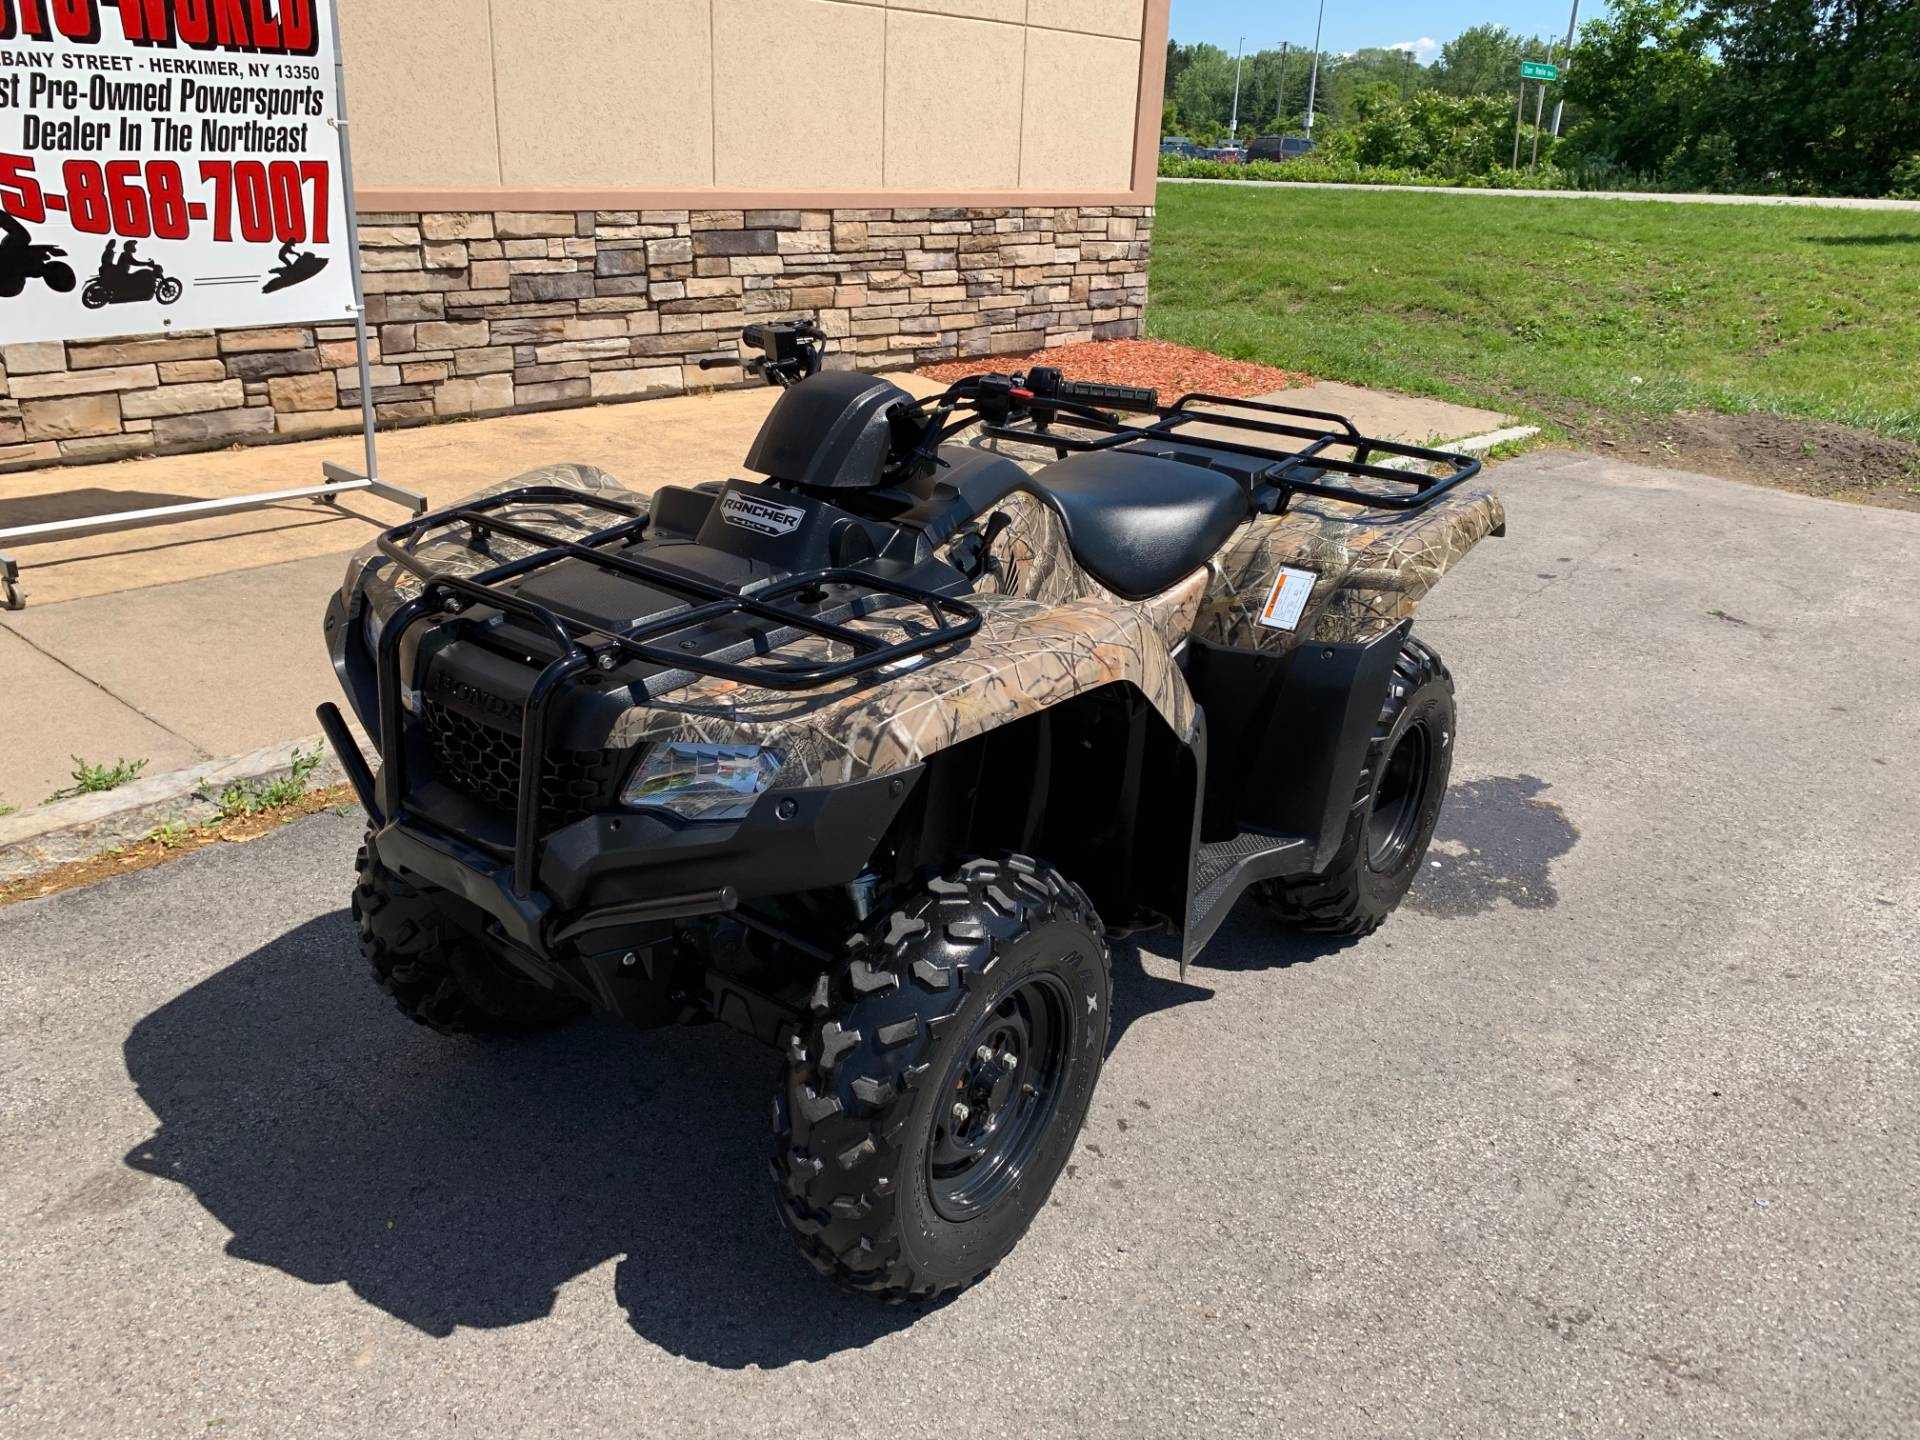 2017 Honda FourTrax Rancher 4x4 in Herkimer, New York - Photo 9